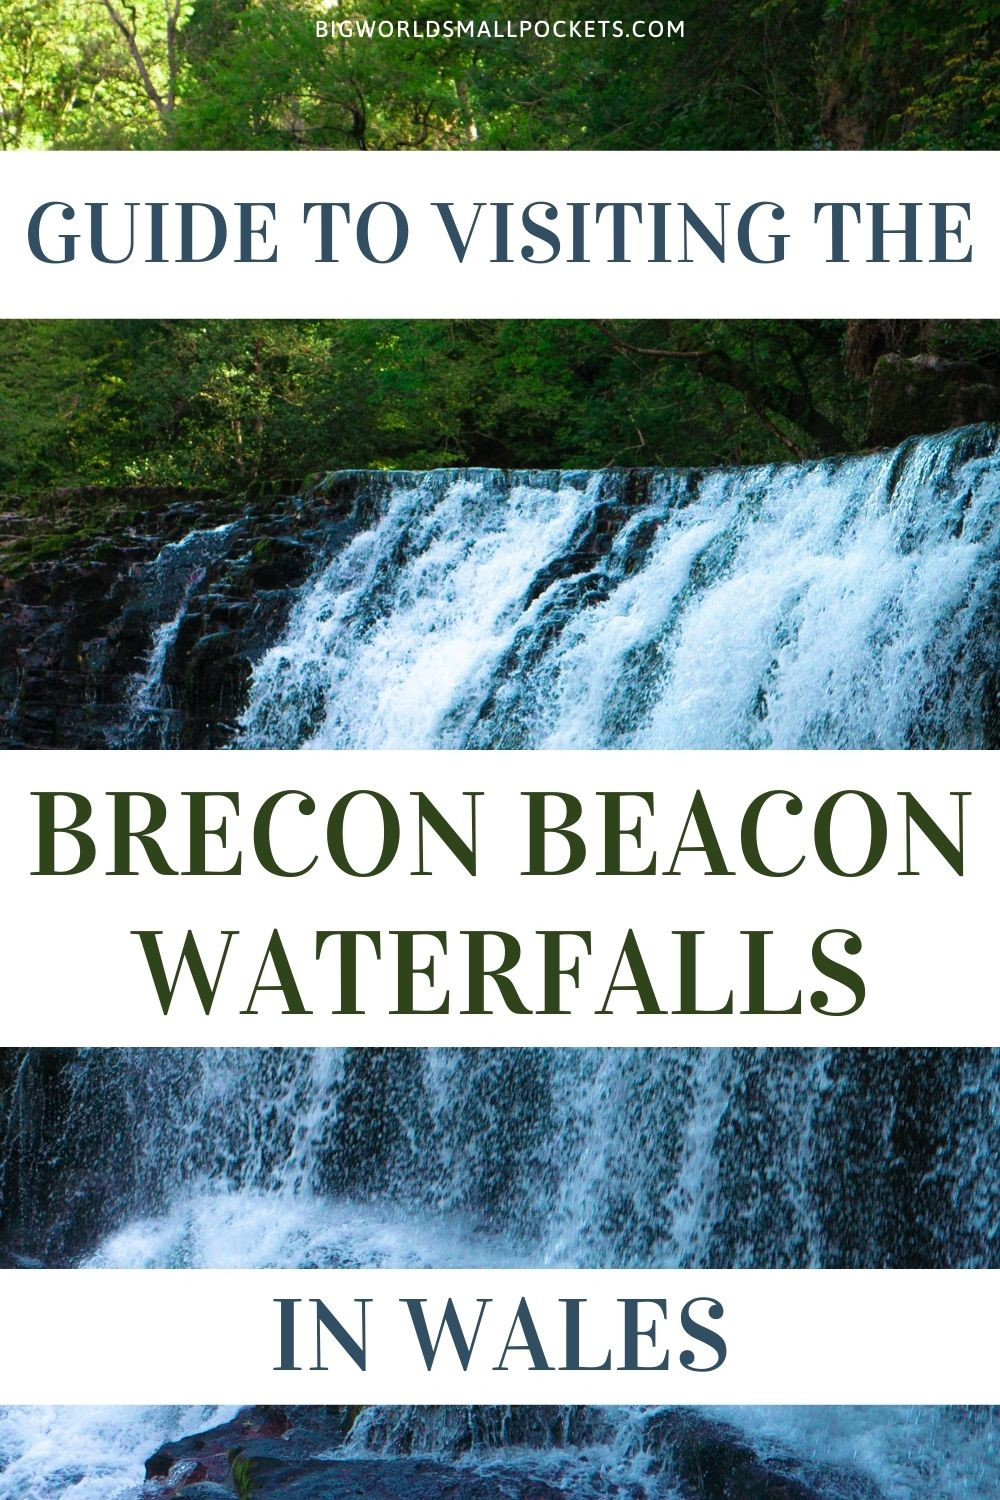 Complete Guide to Visiting the Brecon Beacon Waterfalls in Wales